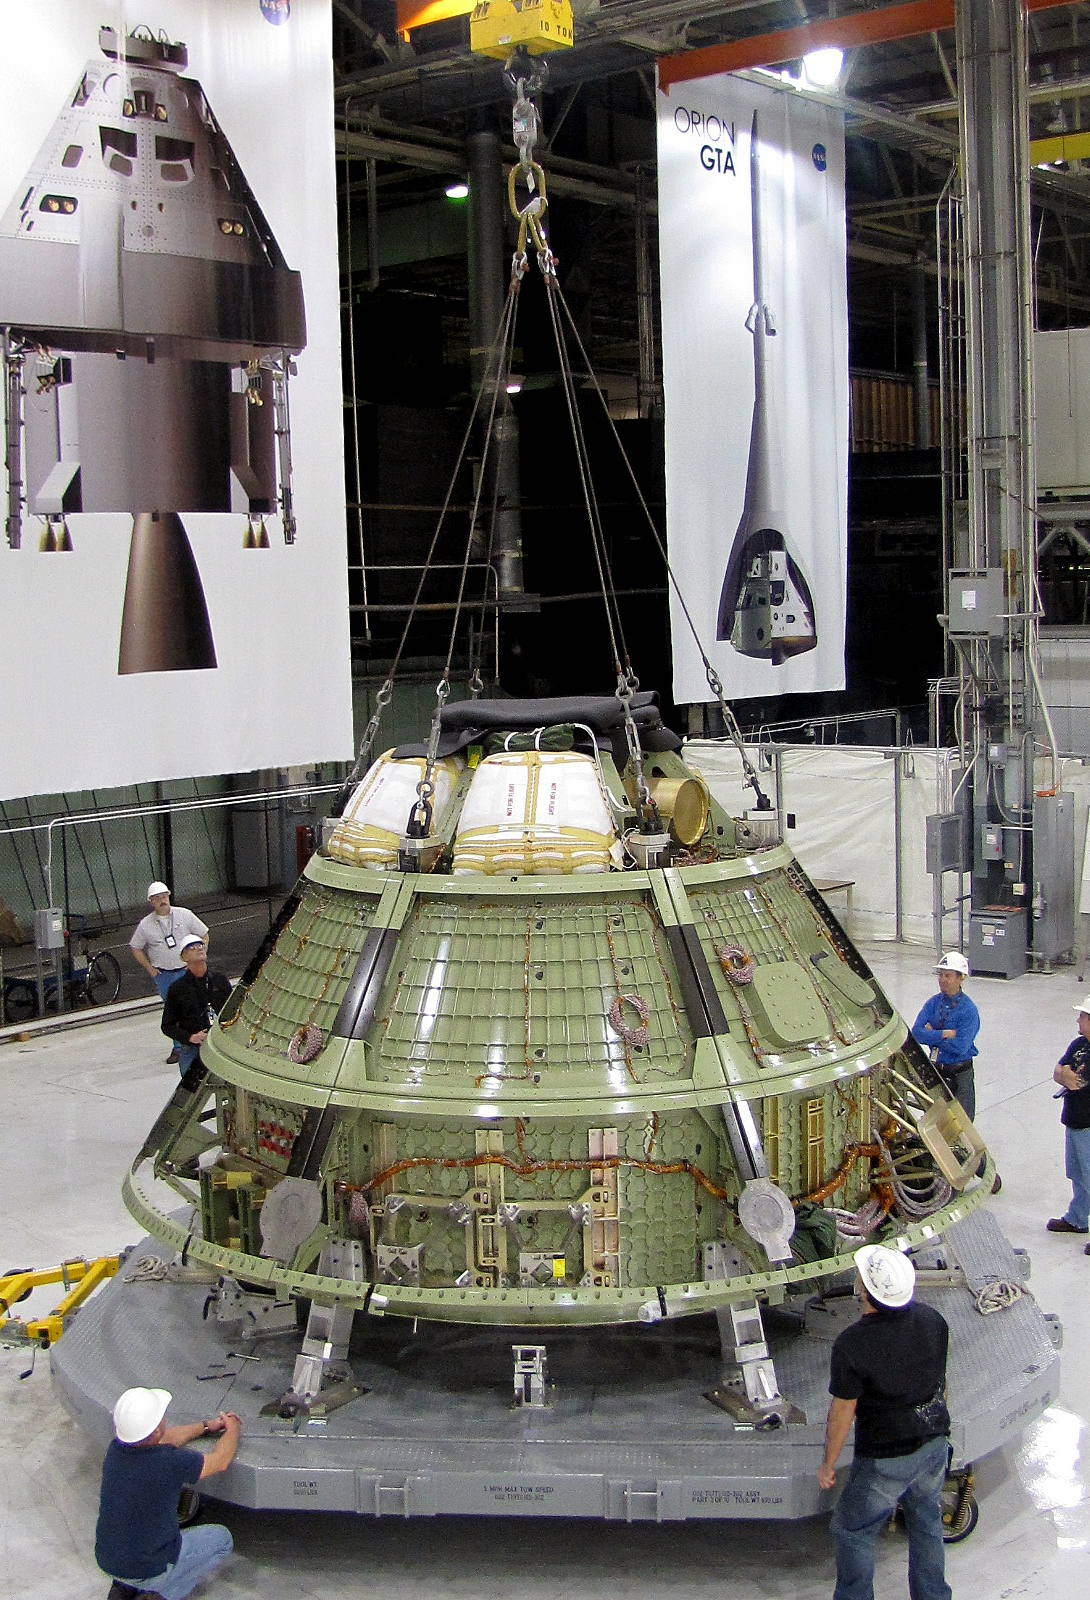 NASA Orion Space Capsule Shipped for Ground Tests